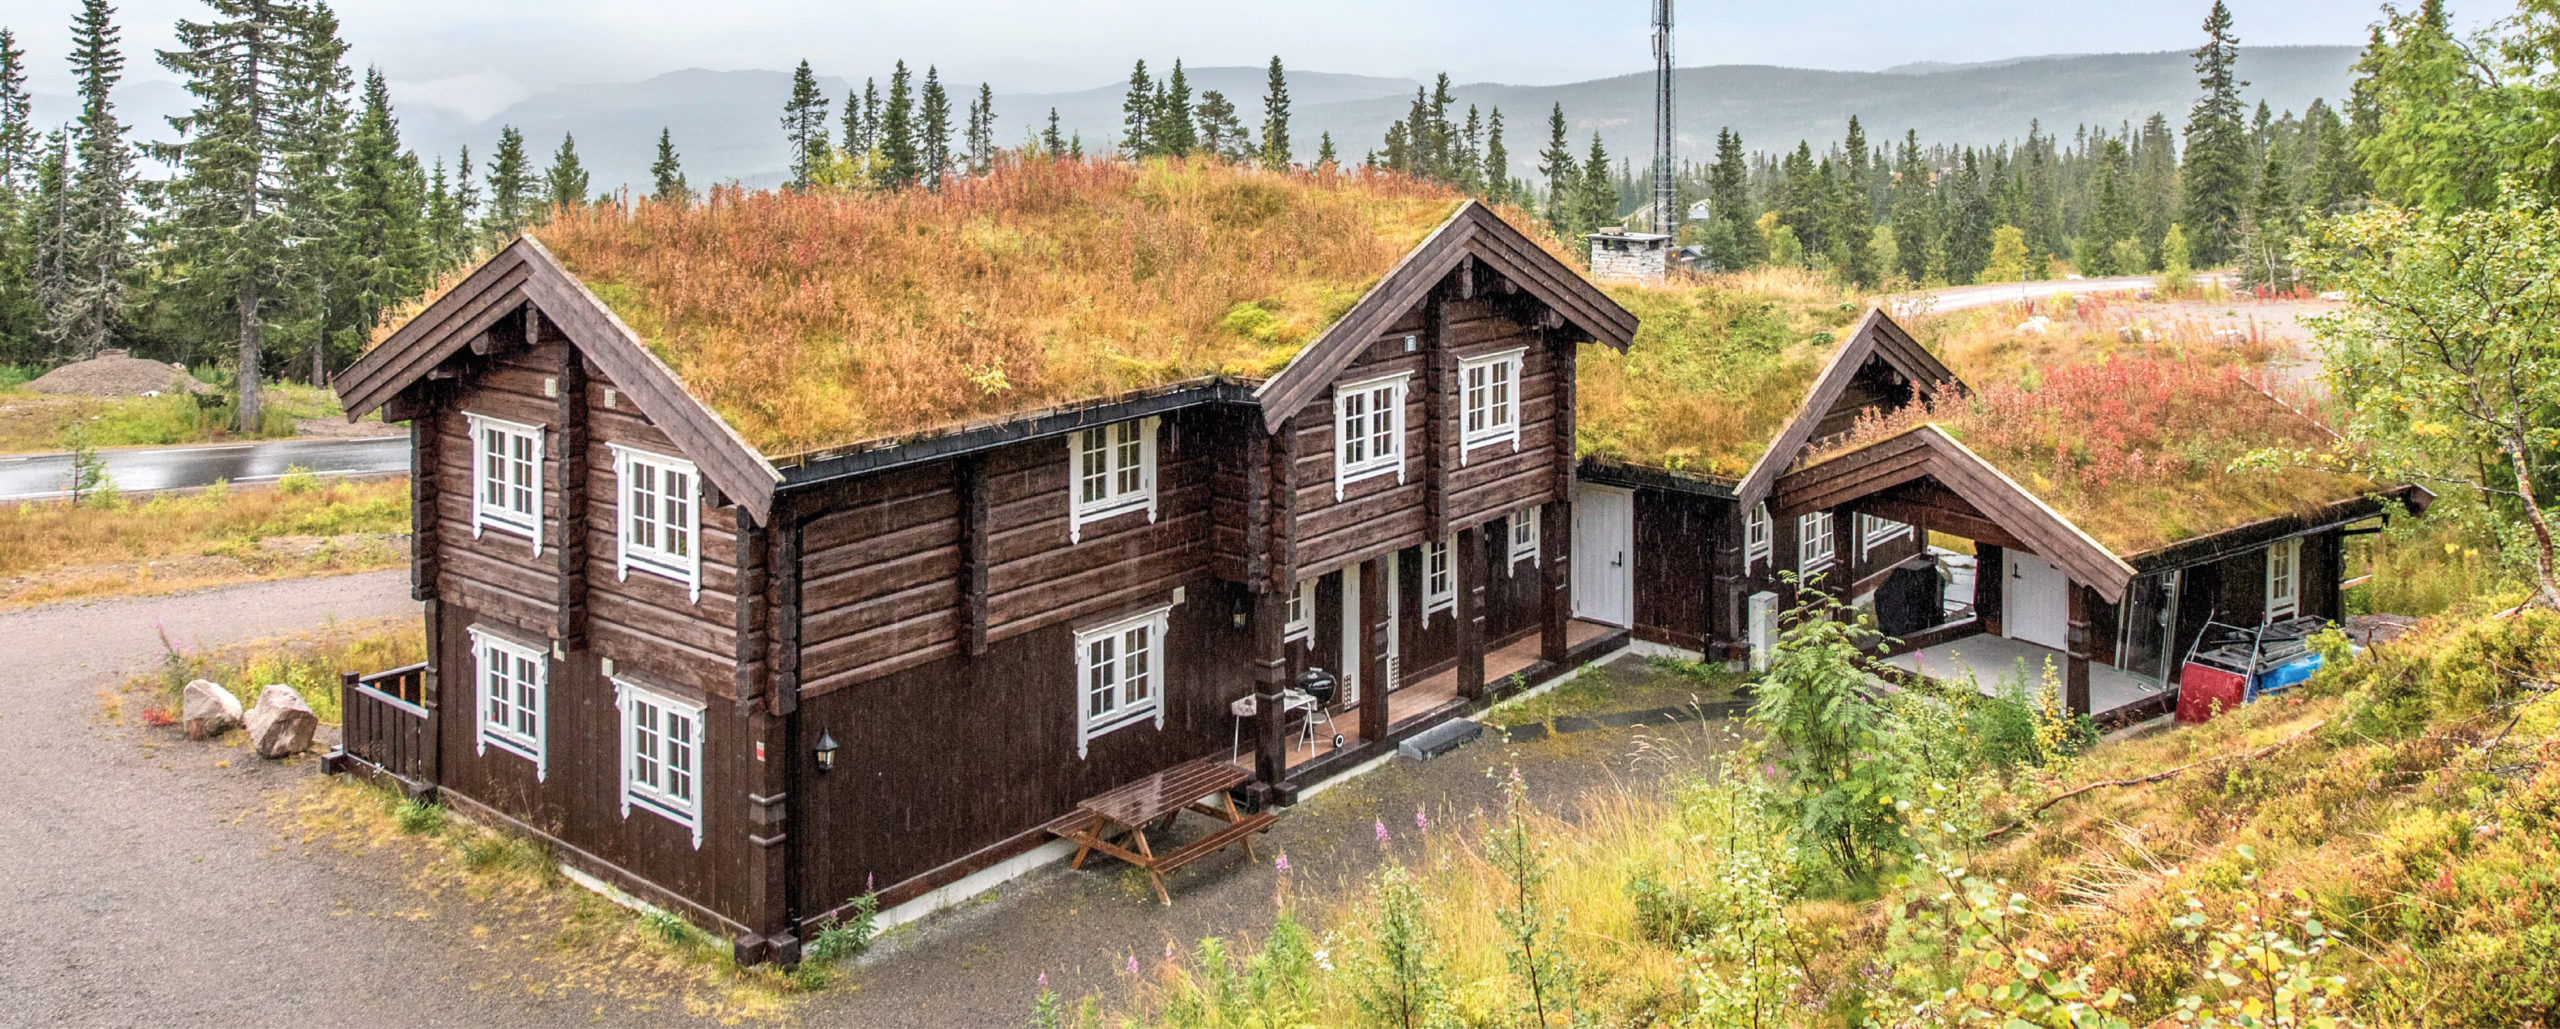 cabin rental in Trysil - large cabins - booktrysilonline